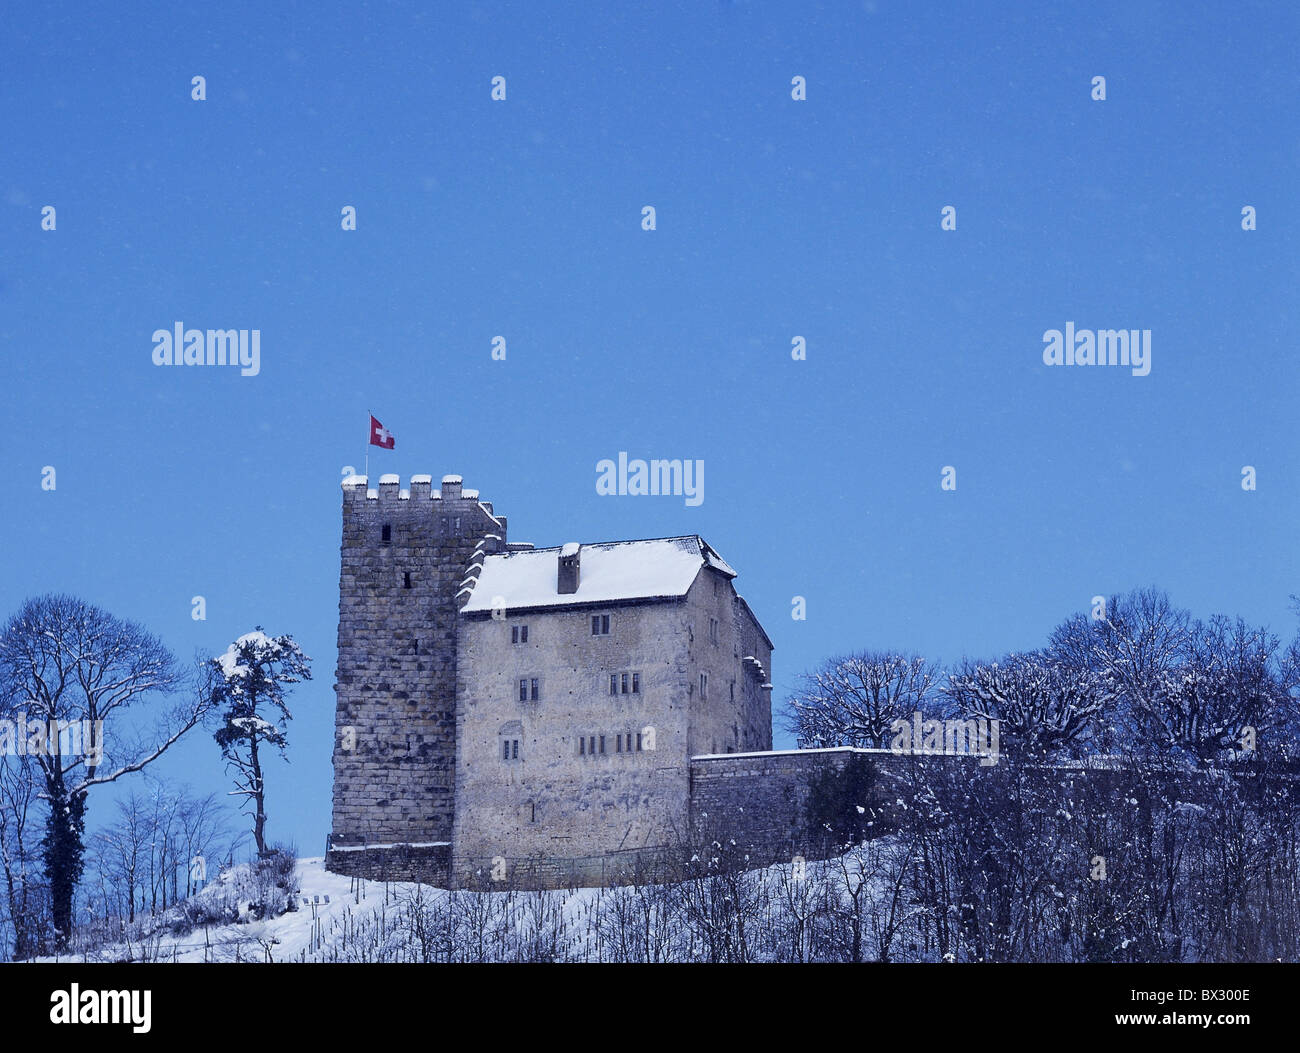 Habsburg castle fortress family castle Habsburger history winter snow canton Aargau Switzerland Europe - Stock Image